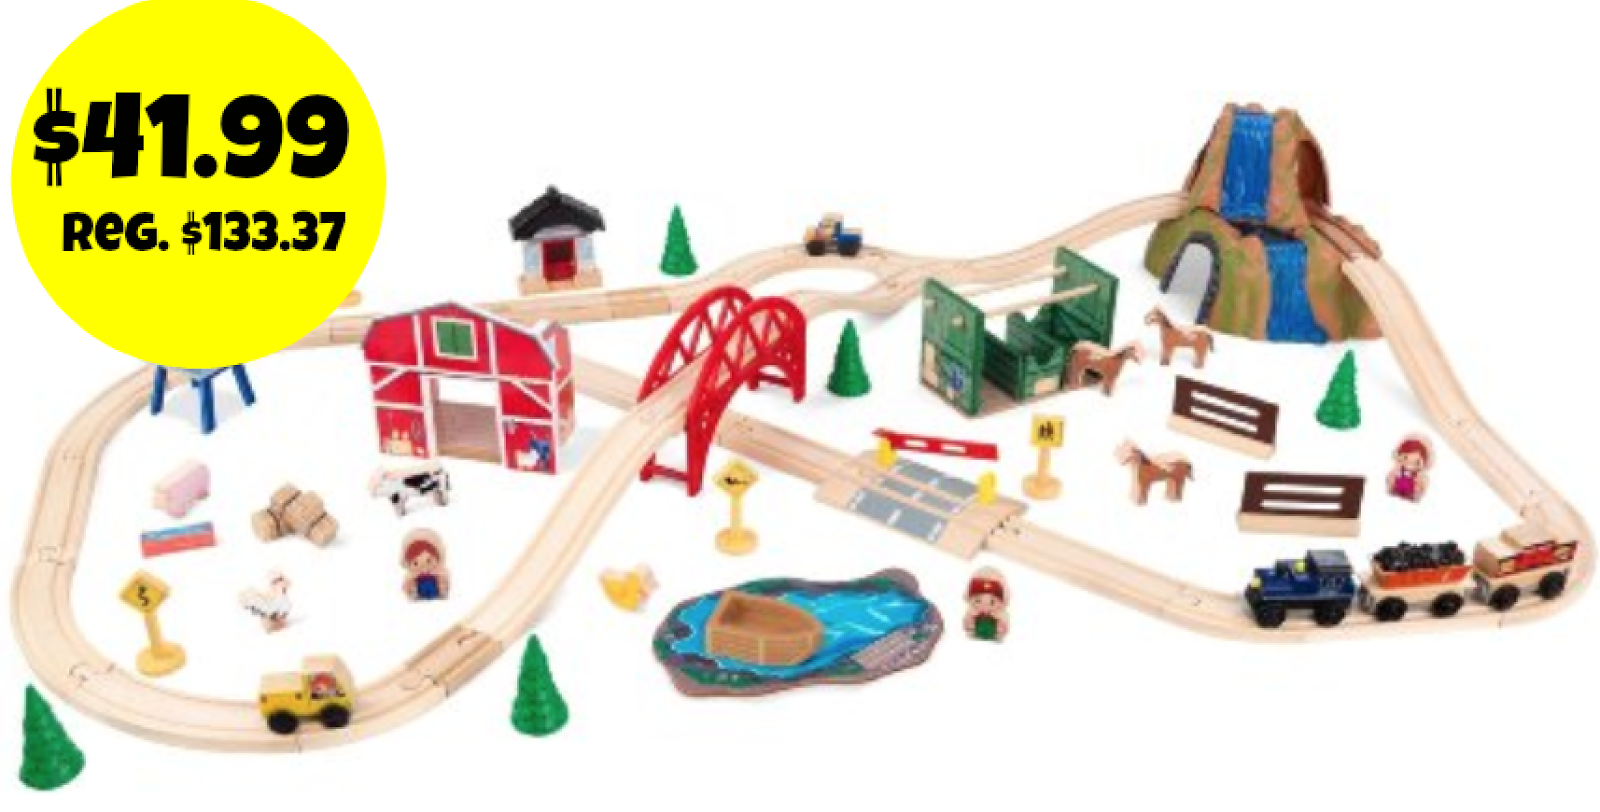 http://www.thebinderladies.com/2014/10/amazon-kidkraft-farm-train-set-4199.html#.VFAipb7dtbw